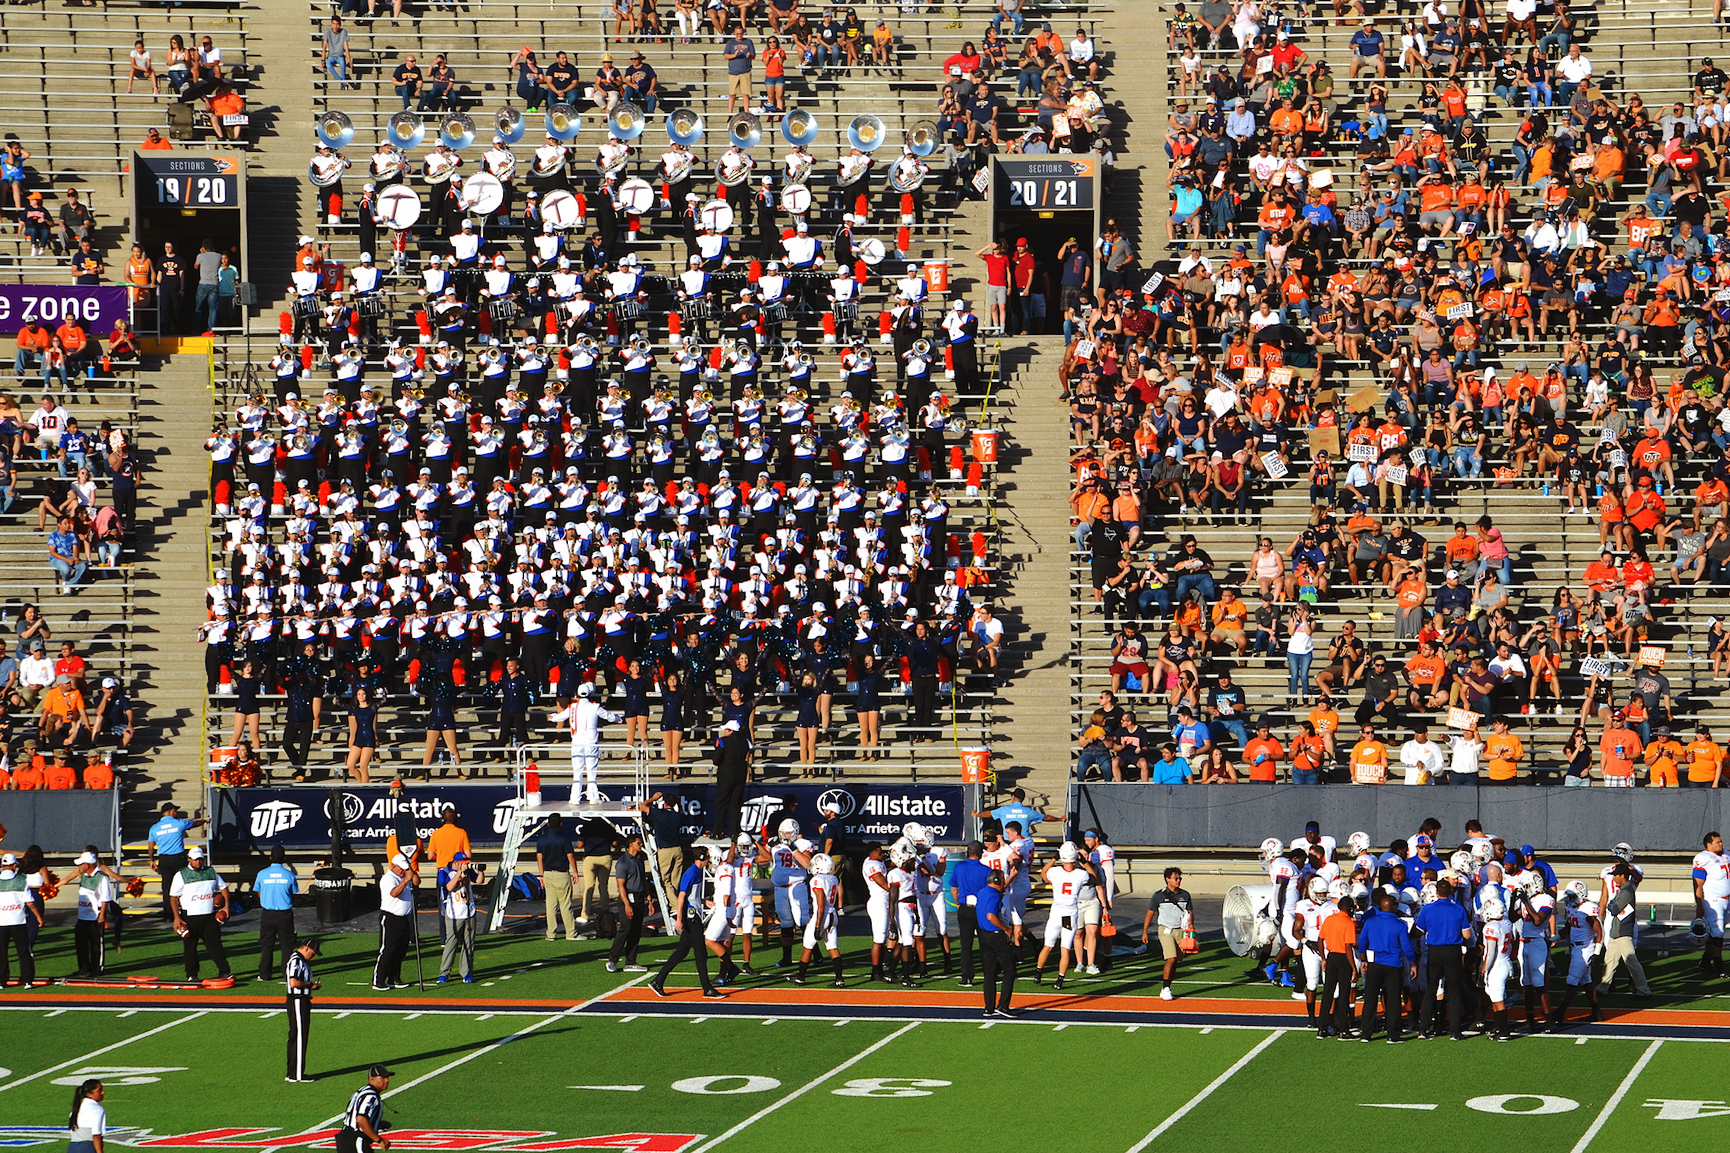 Football Breakthrough? UTEP Miners End Dry Spell with Key Late Plays